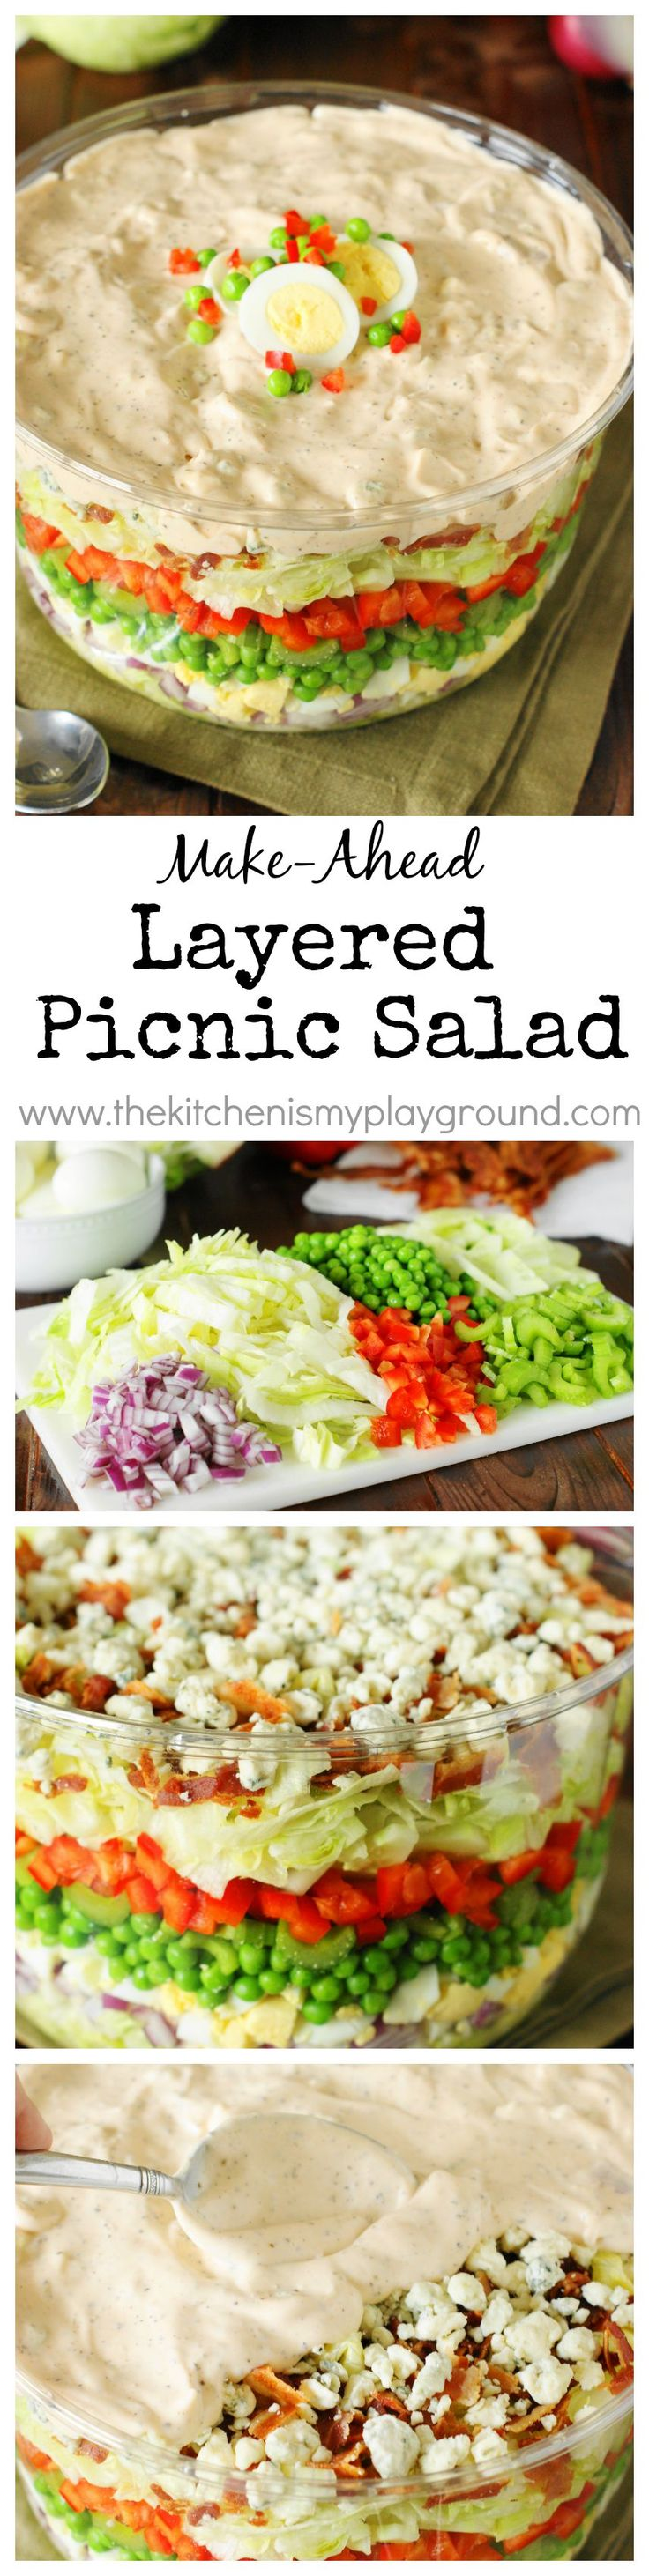 Make-Ahead Layered Picnic Salad ~ make-ahead convenience & fantastic flavors.  Perfect for backyard barbecues, potlucks, or the random Sunday get-together!   www.thekitchenismyplayground.com